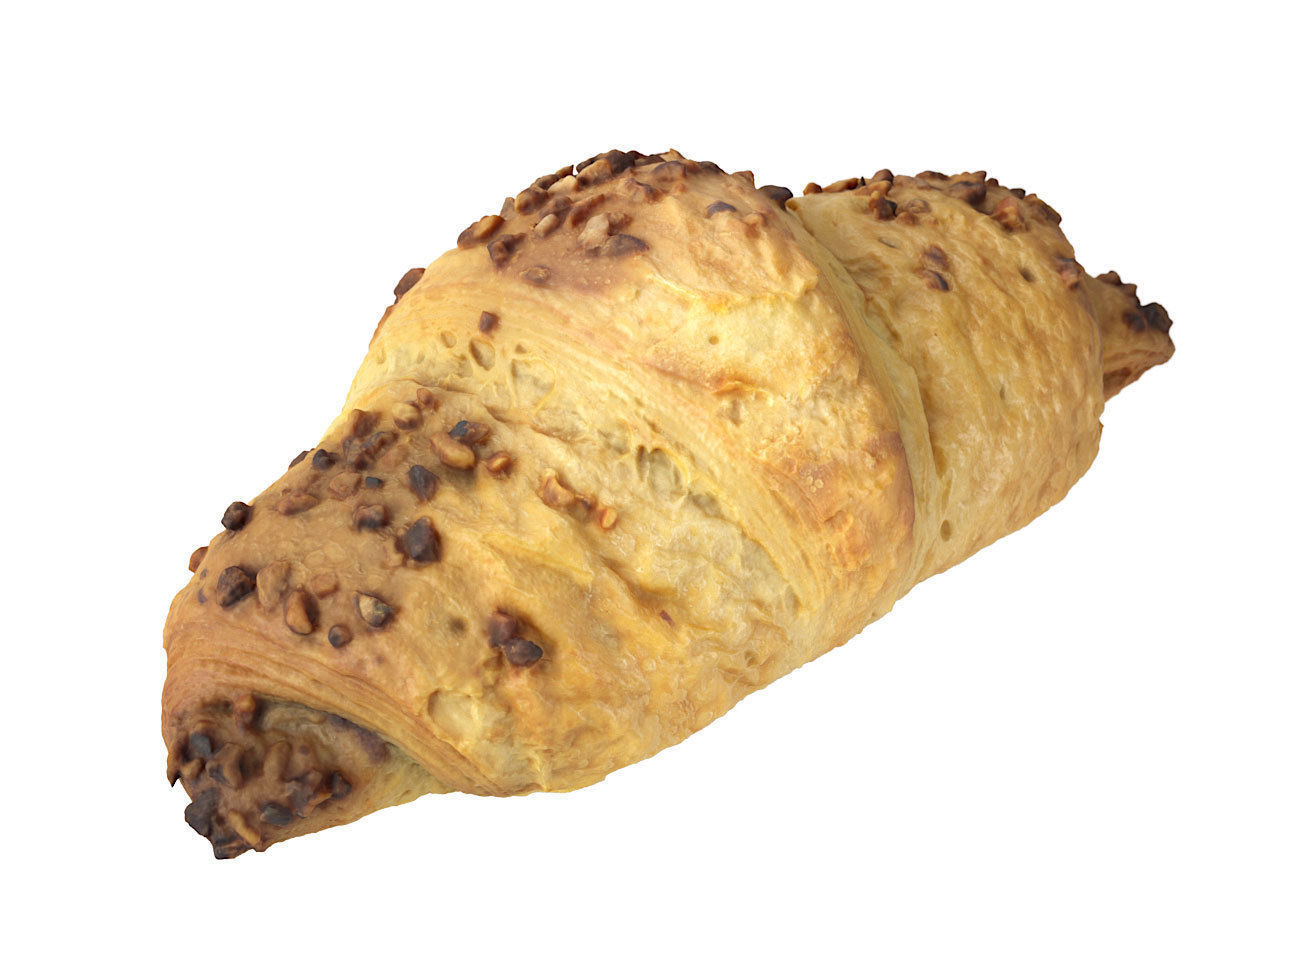 Photorealistic Chocolate Croissant 3D Scan